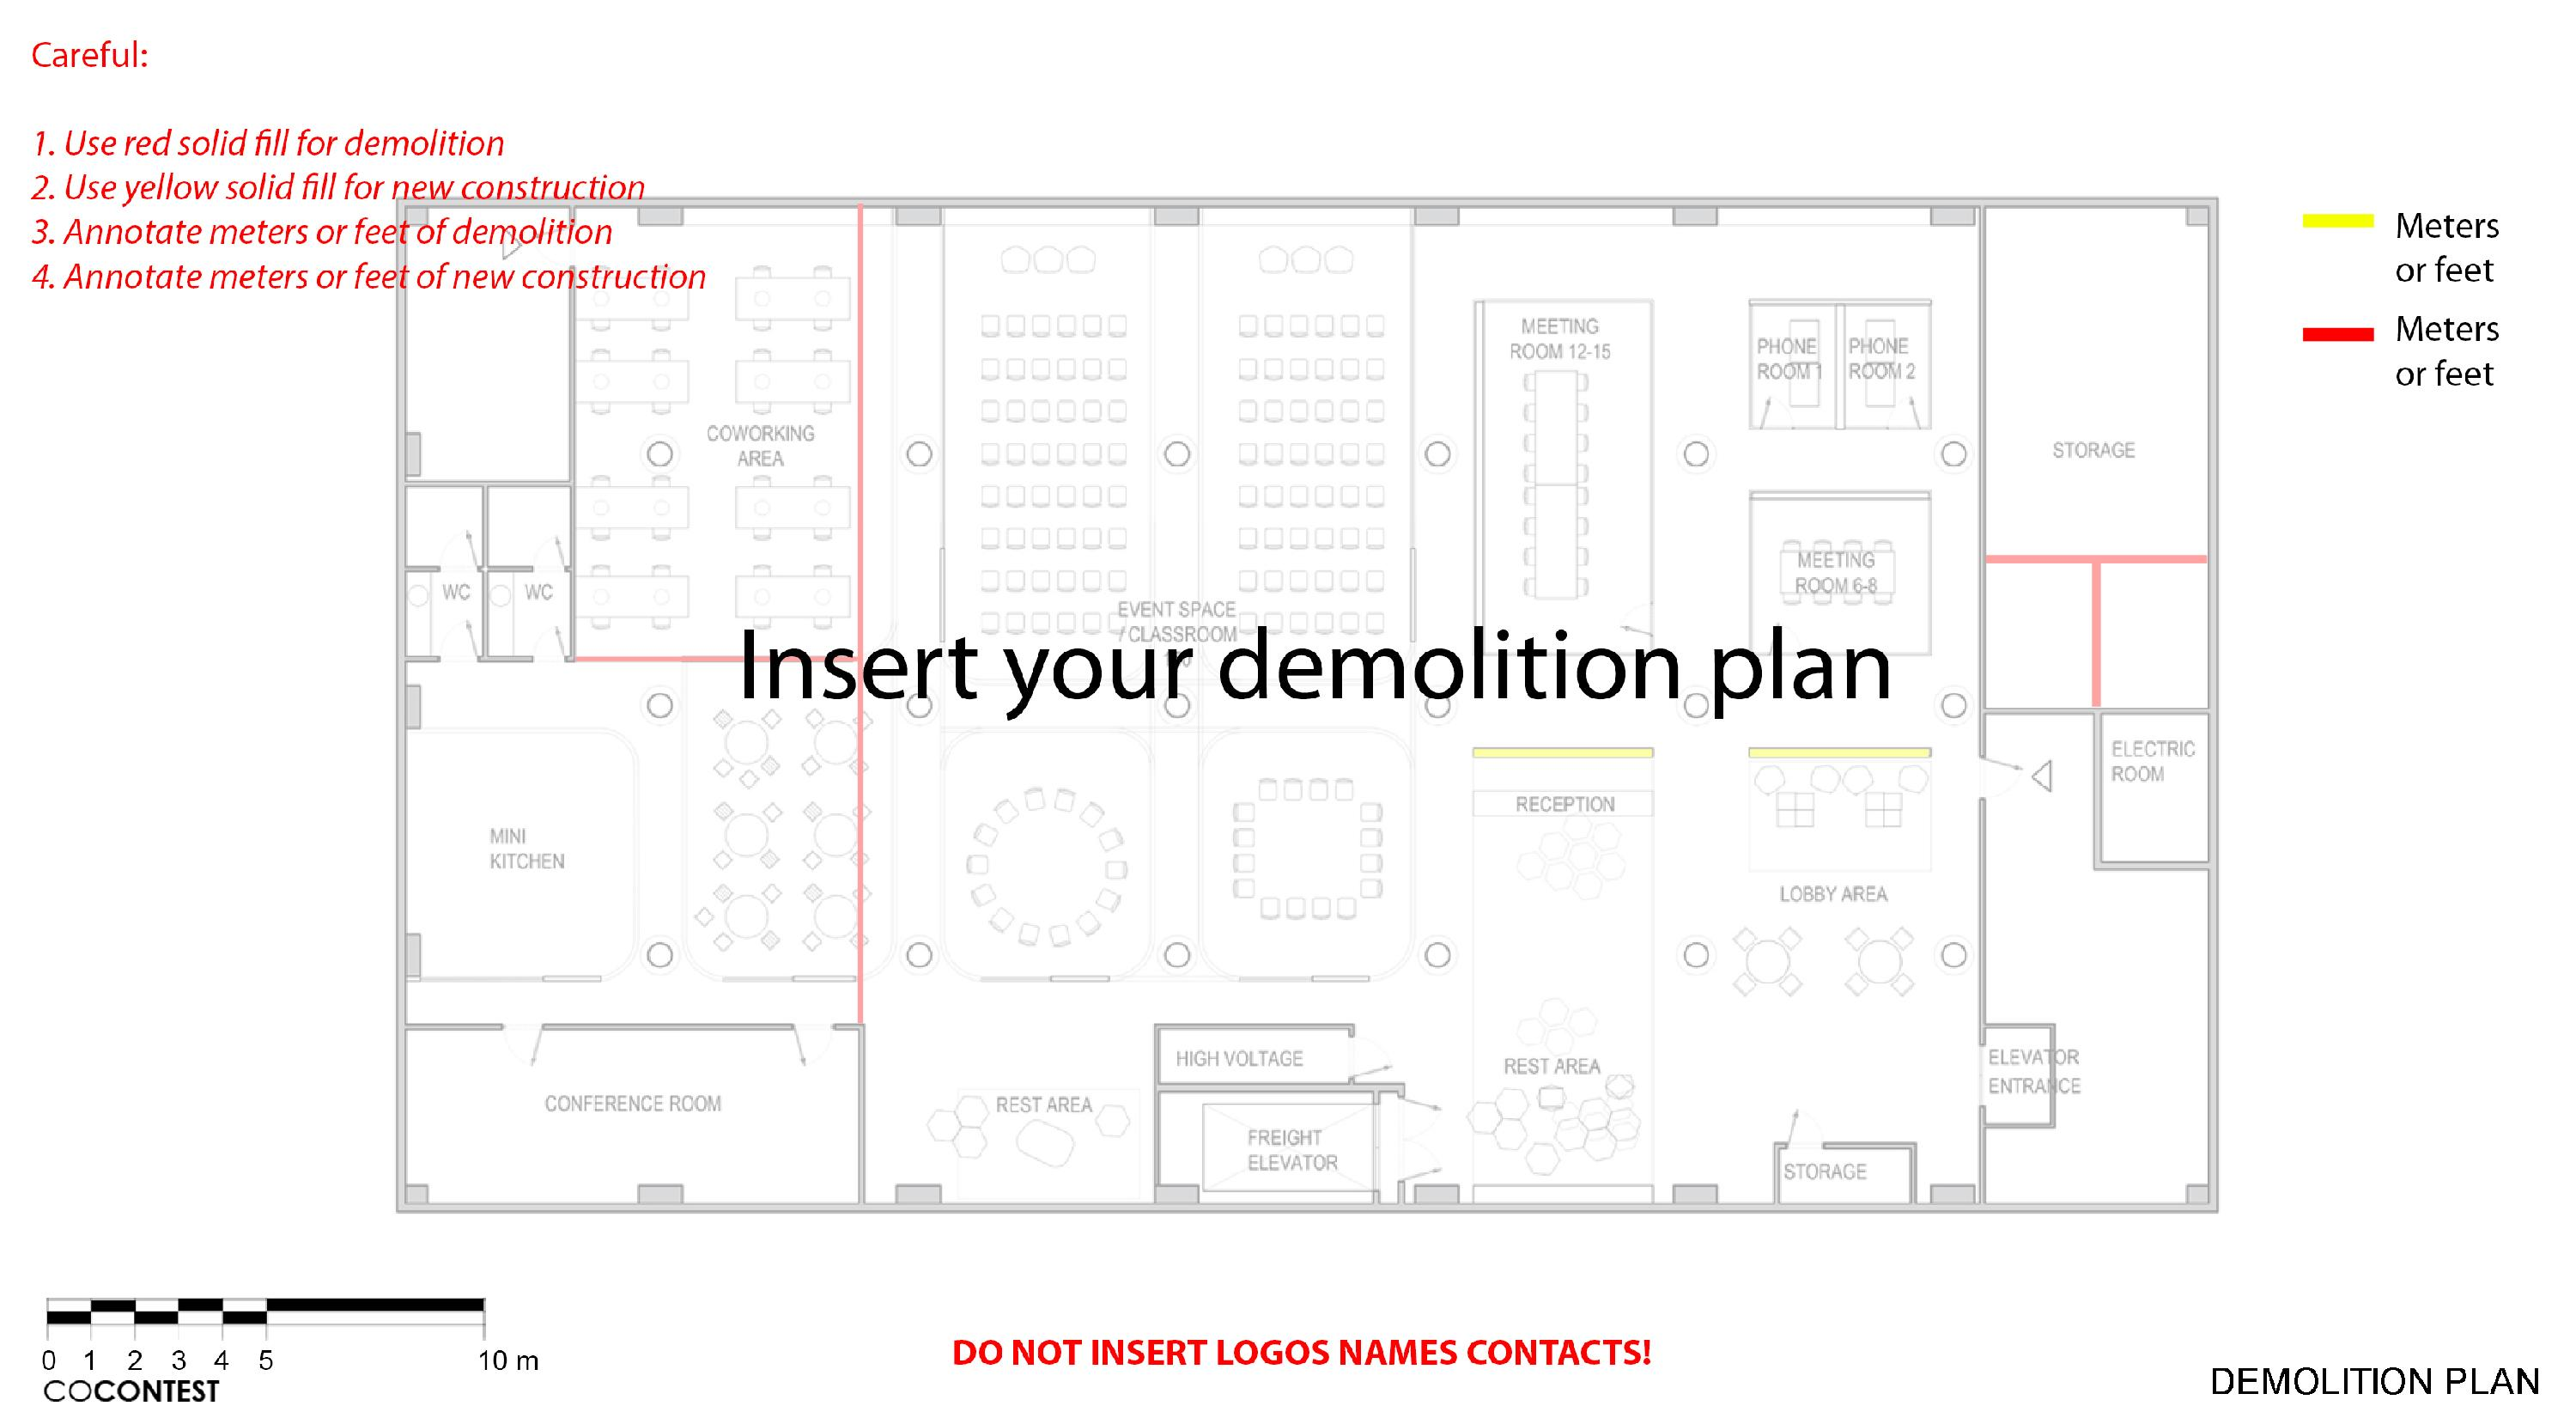 demolition plan template - demolition plan template knowledge base gopillar